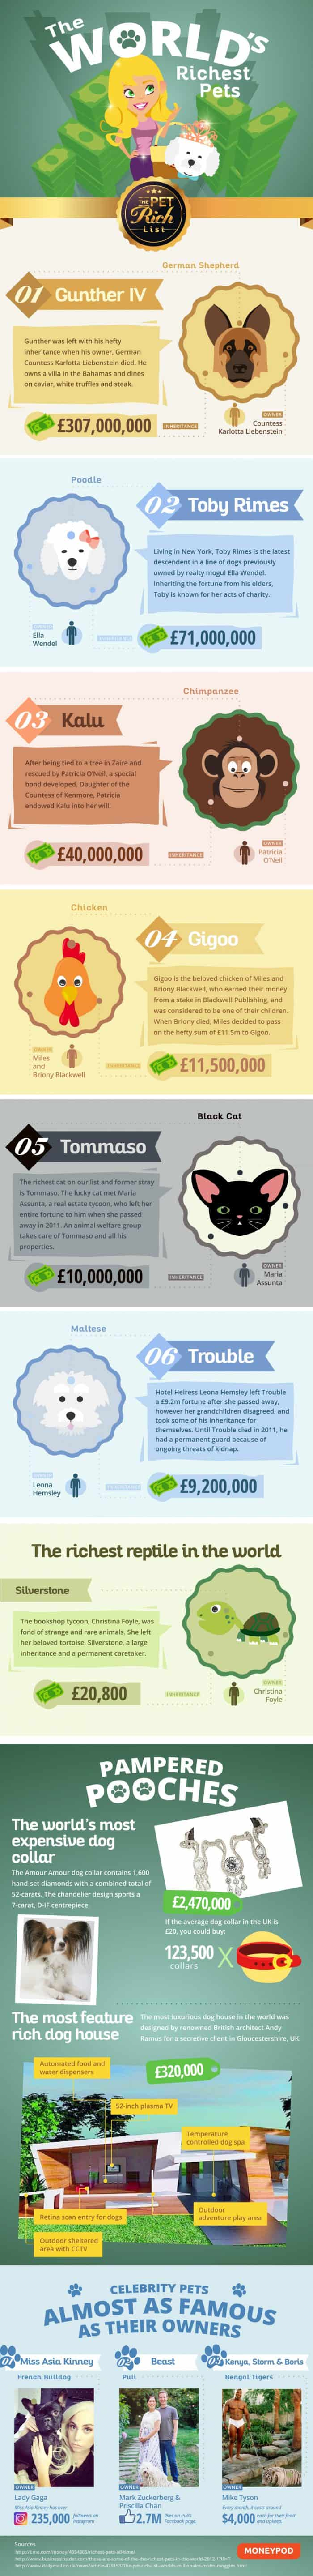 infographic describes some of the world's richest pets, many of whom have hefty inheritances